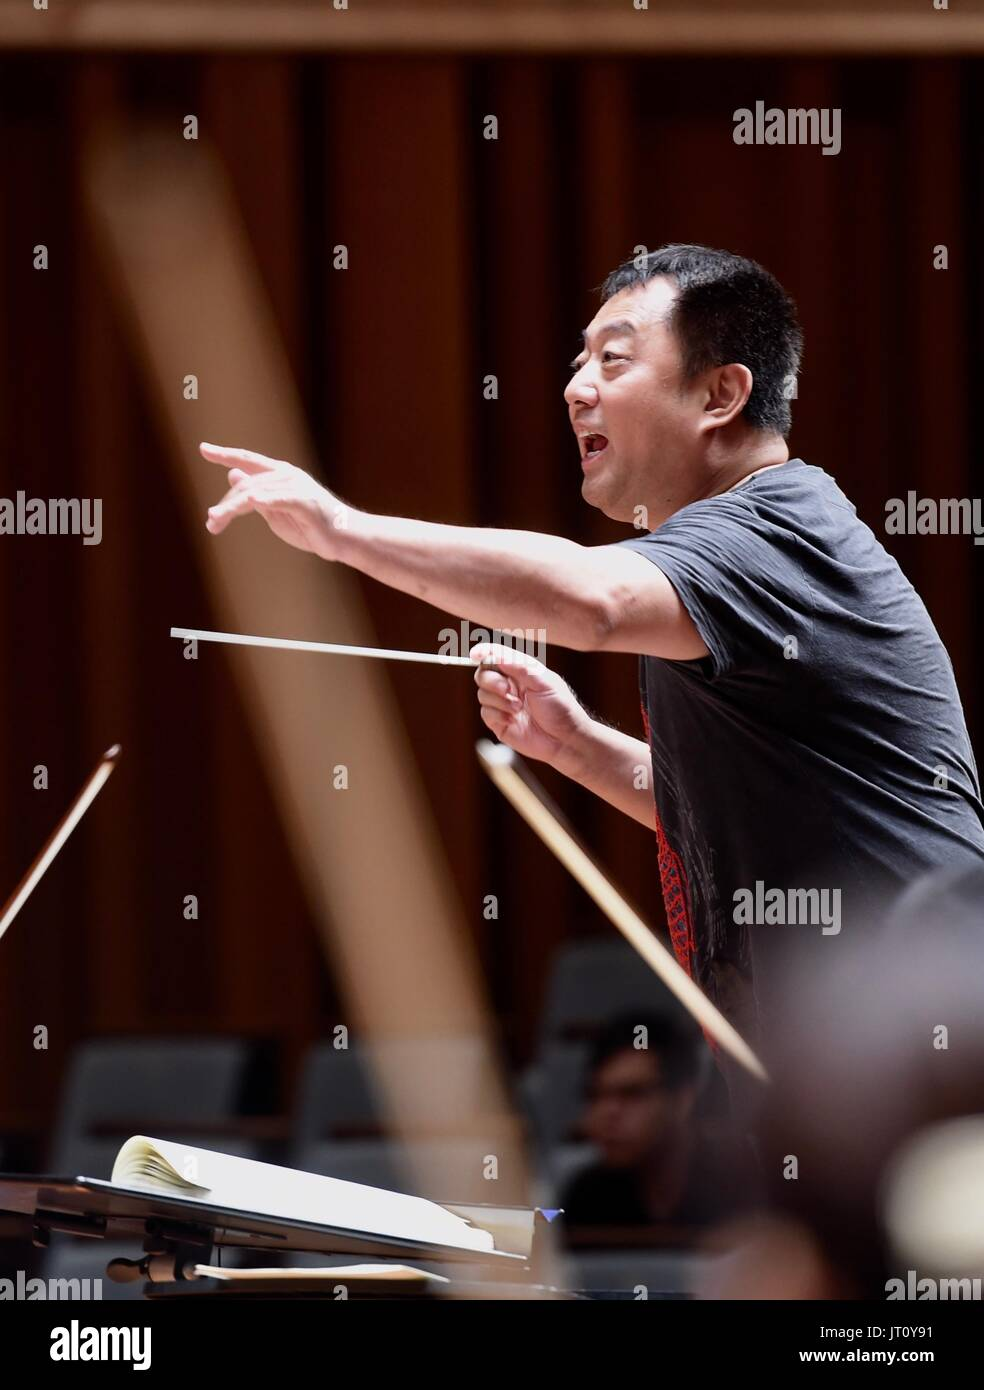 Beijing, China. 7th Aug, 2017. Conductor Lu Jia conducts the rehearsal of 'Ode to Joy' in Beijing, capital of China, Aug. 7, 2017. China National Center for the Performing Arts (NCPA) invited media and more than 110 audience to the rehearsal on Monday. From August 8th to 9th, Lu Jia will conduct NCPA Orchestra and Chorus to interpret Beethoven's Symphony No. 9 in D Minor, also known as 'the Choral'. Credit: Luo Xiaoguang/Xinhua/Alamy Live News - Stock Image